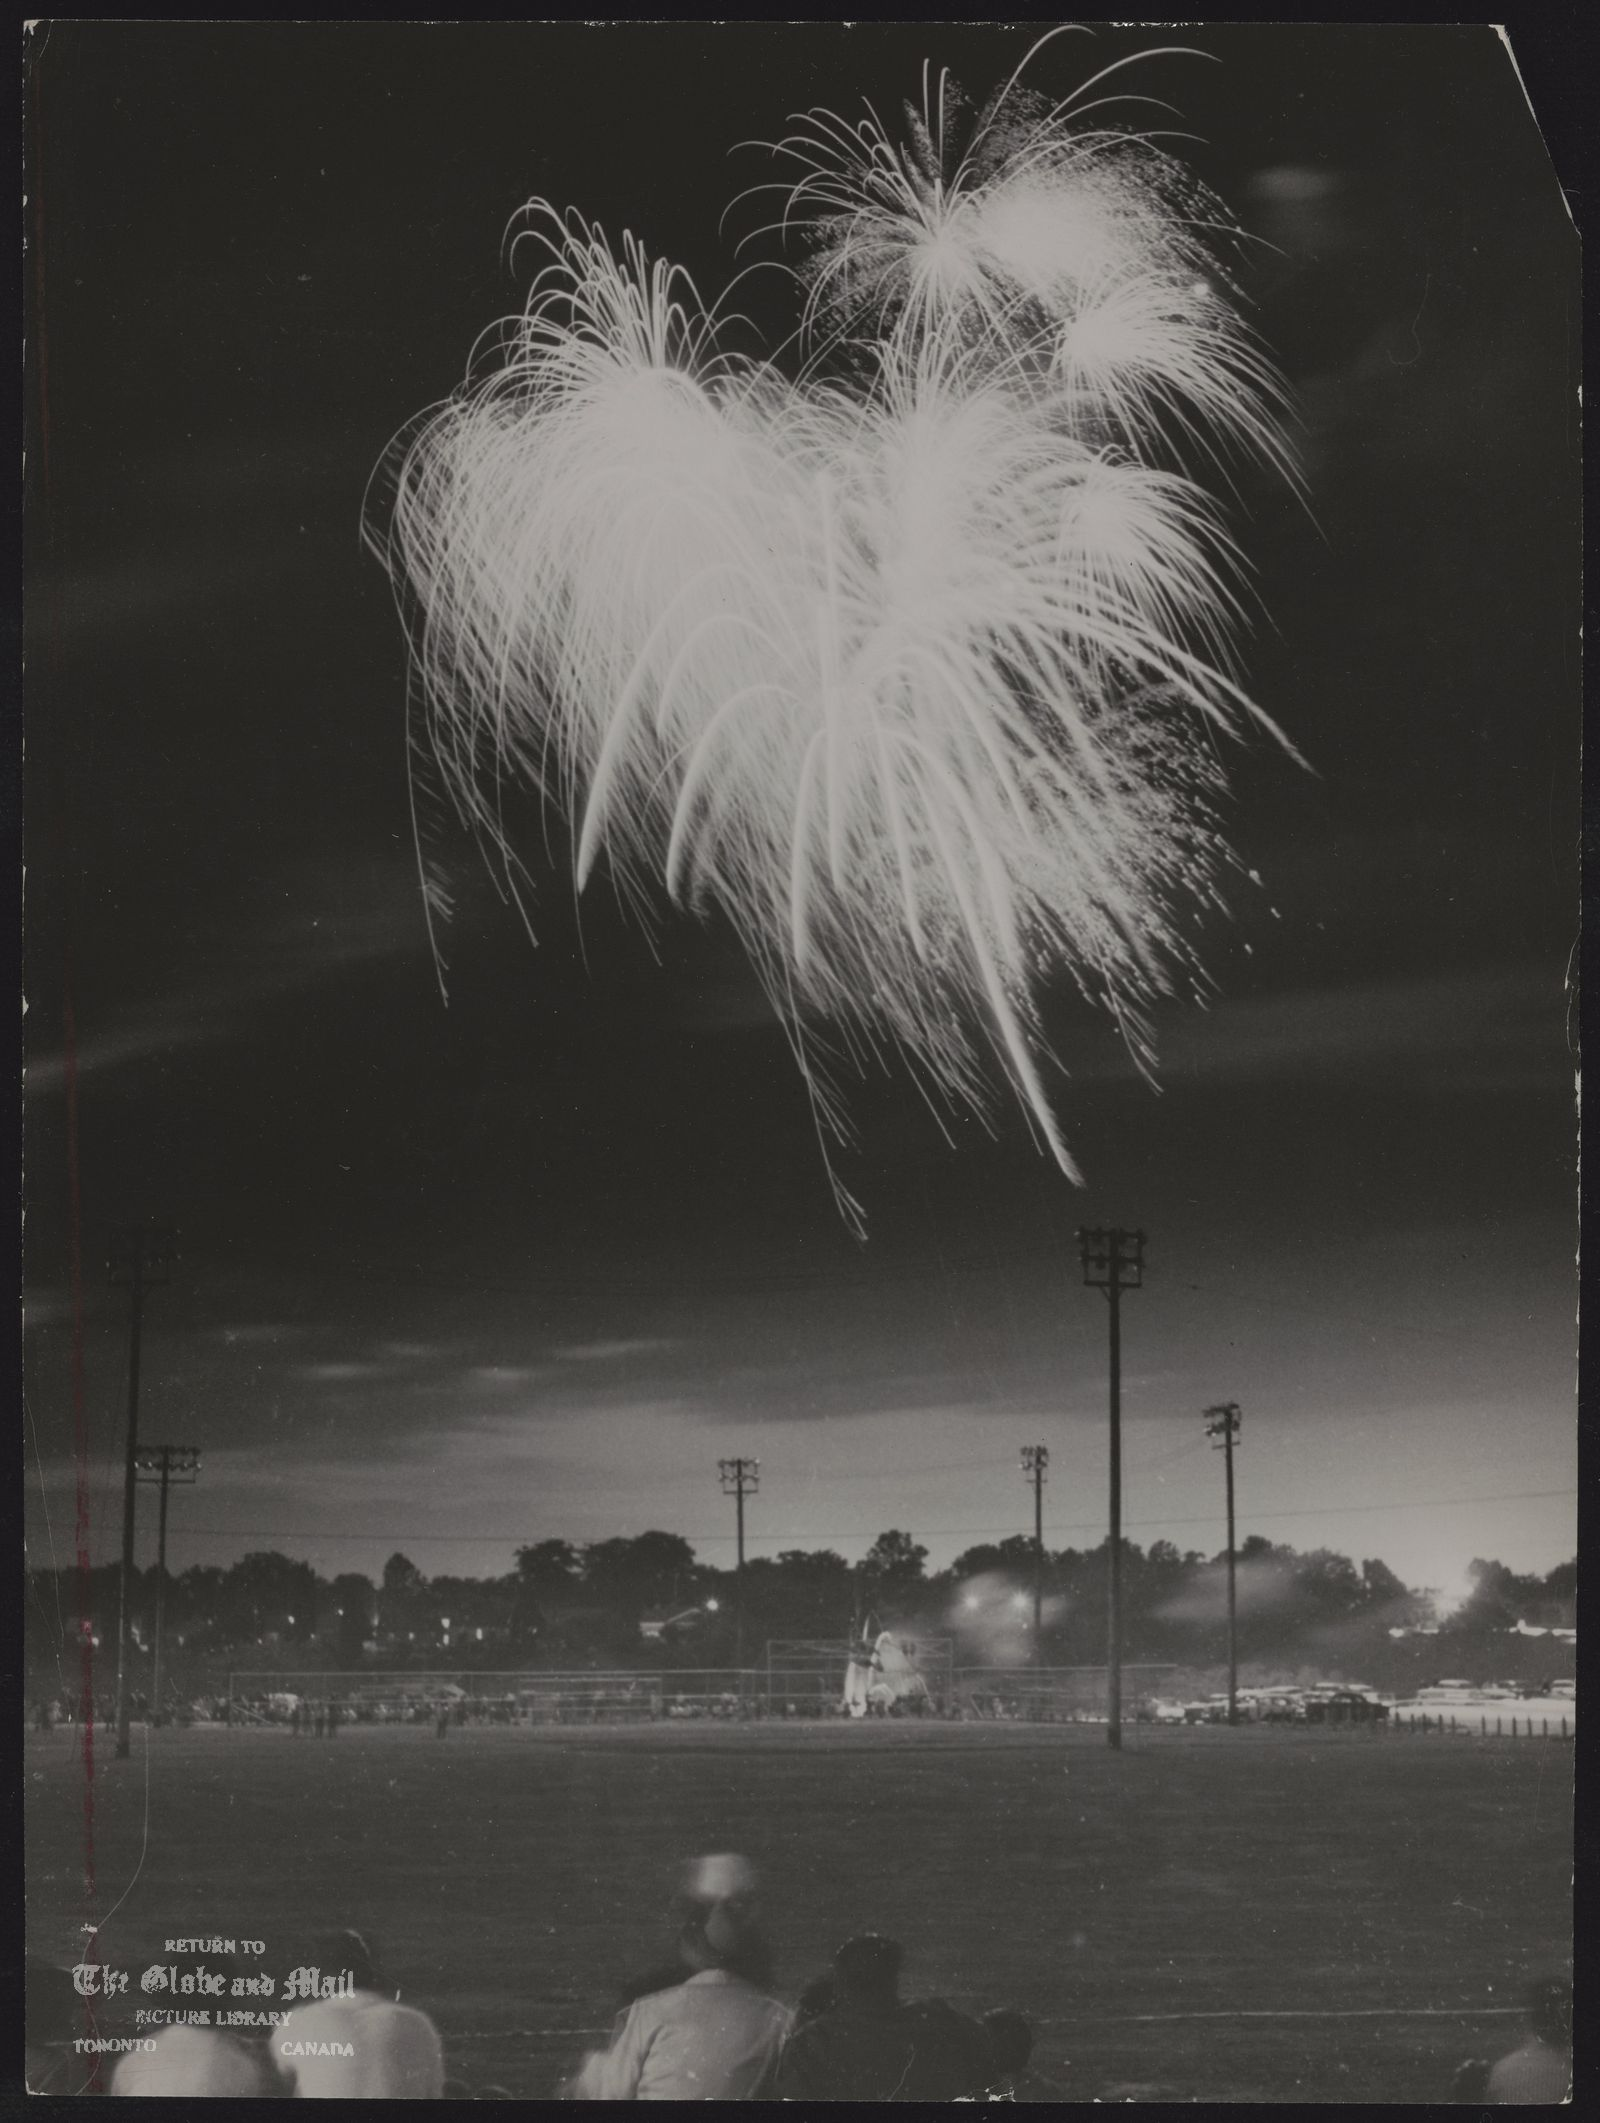 The notes transcribed from the back of this photograph are as follows: [July 1, 1960], fireworks over Cedarvale Park mark DOMINION DAY